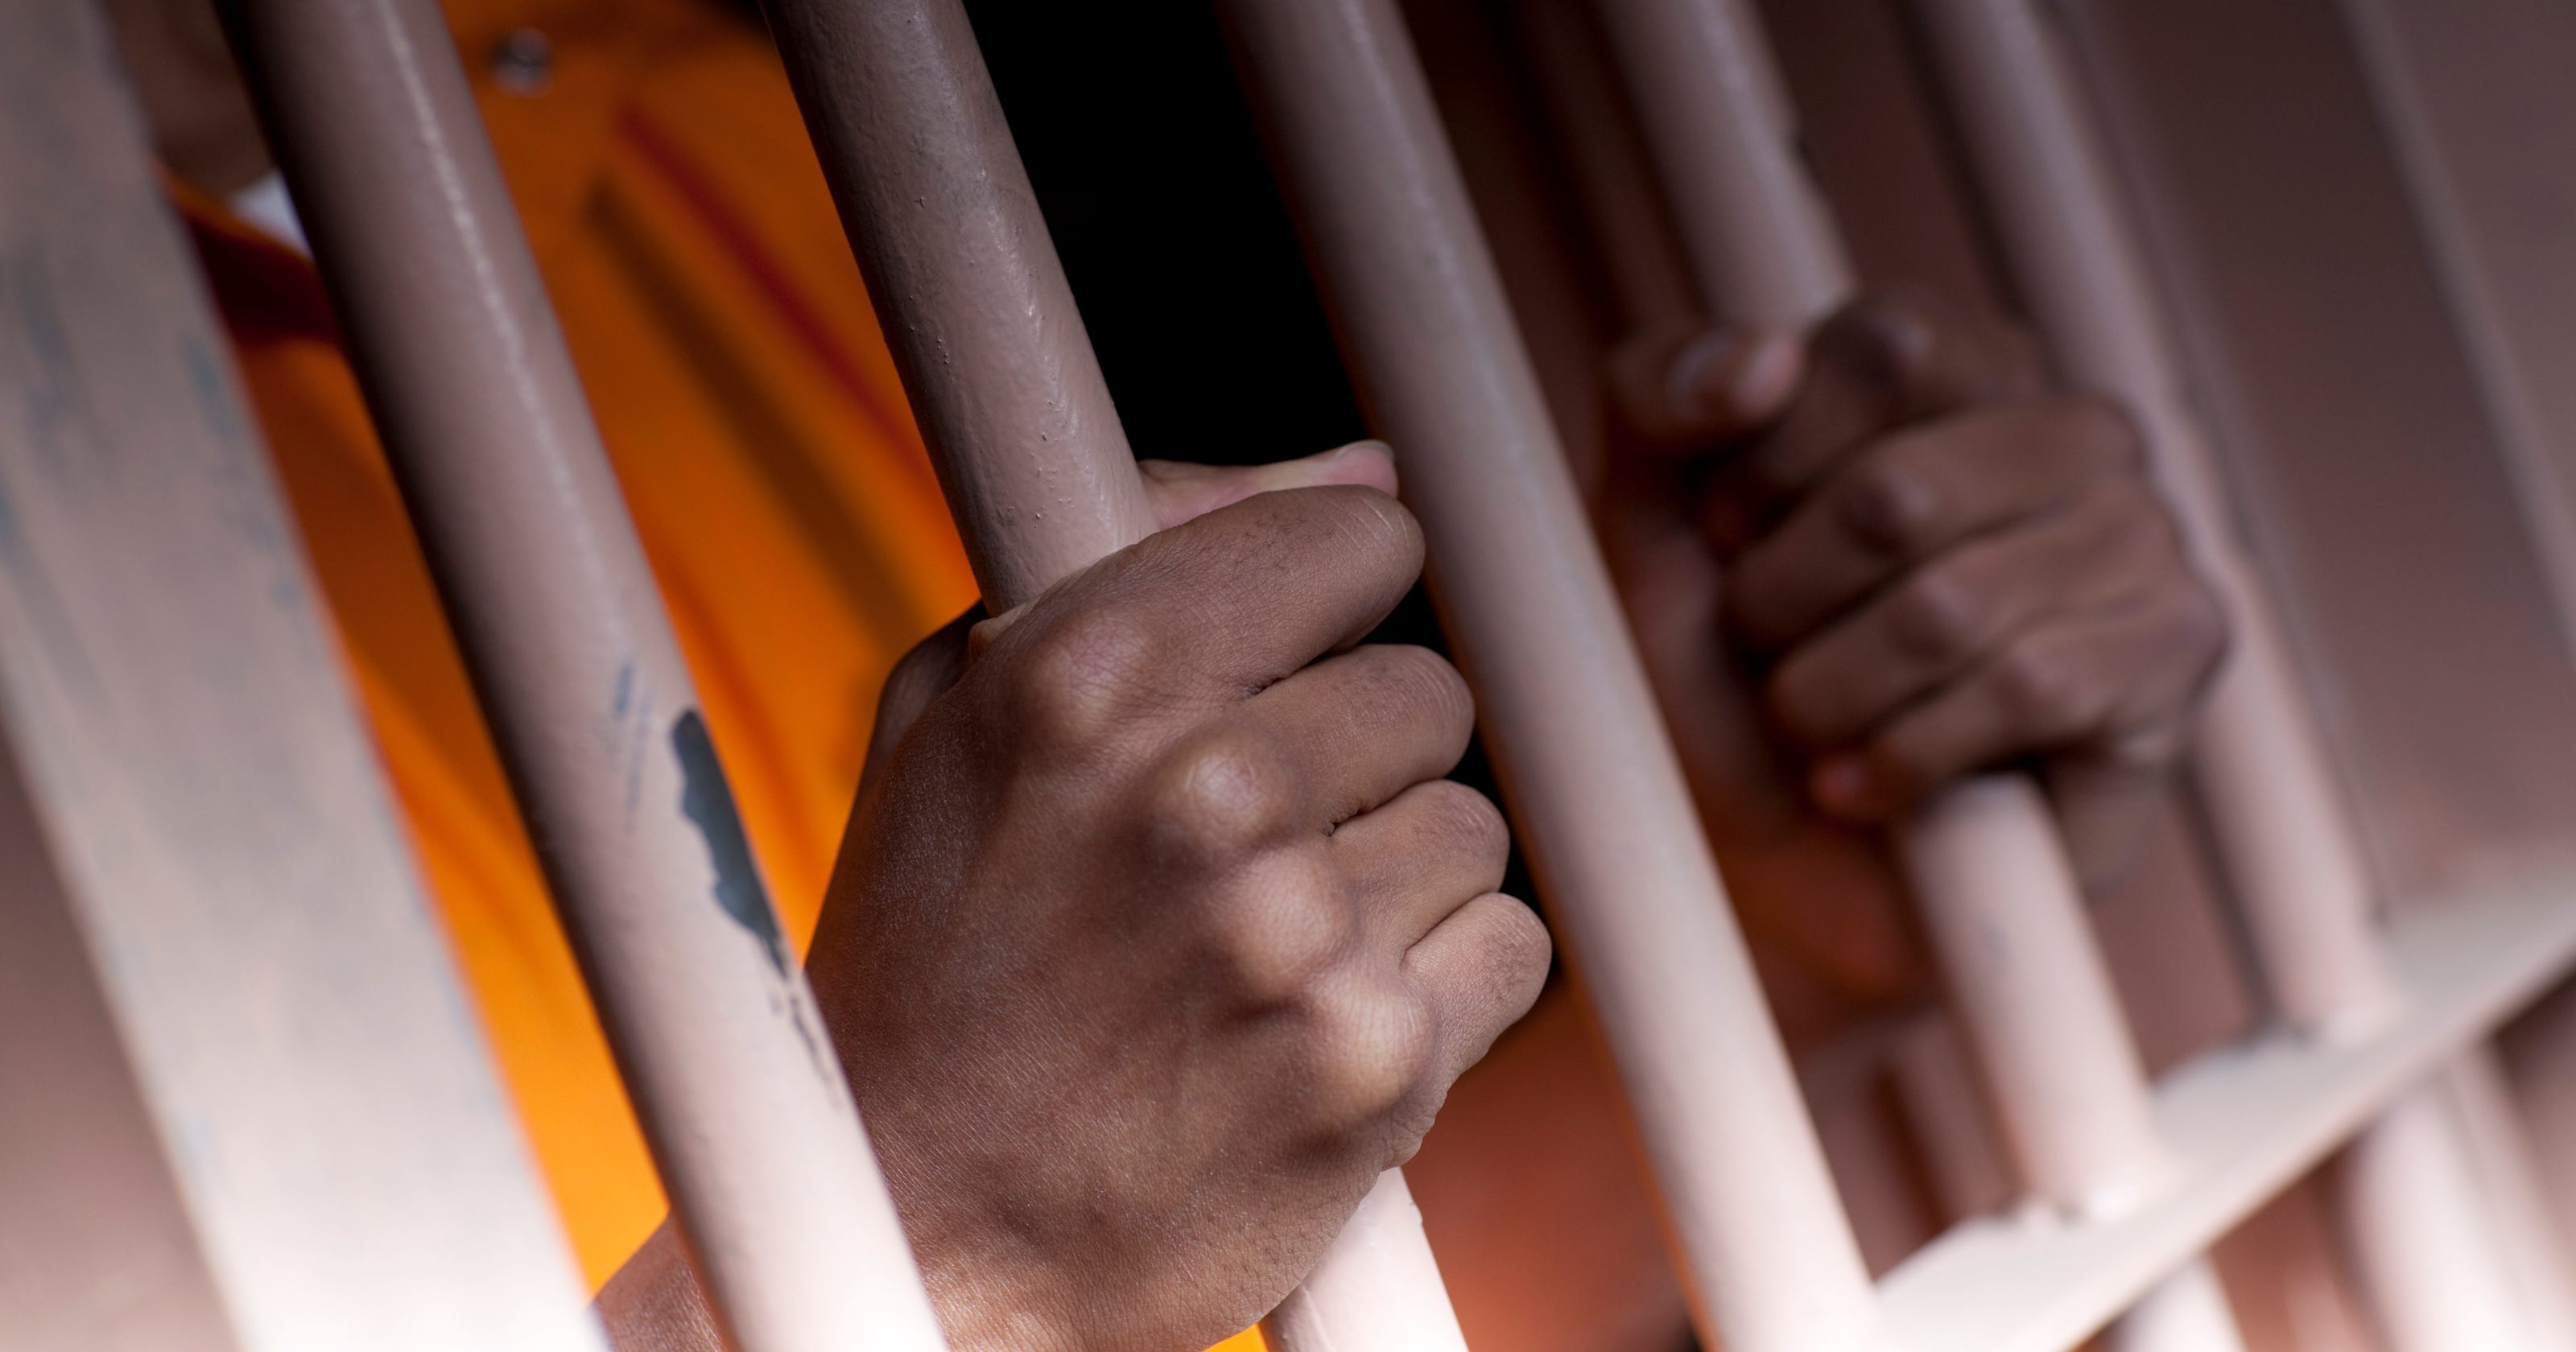 More than reducing incarceration, tackle prison issues that